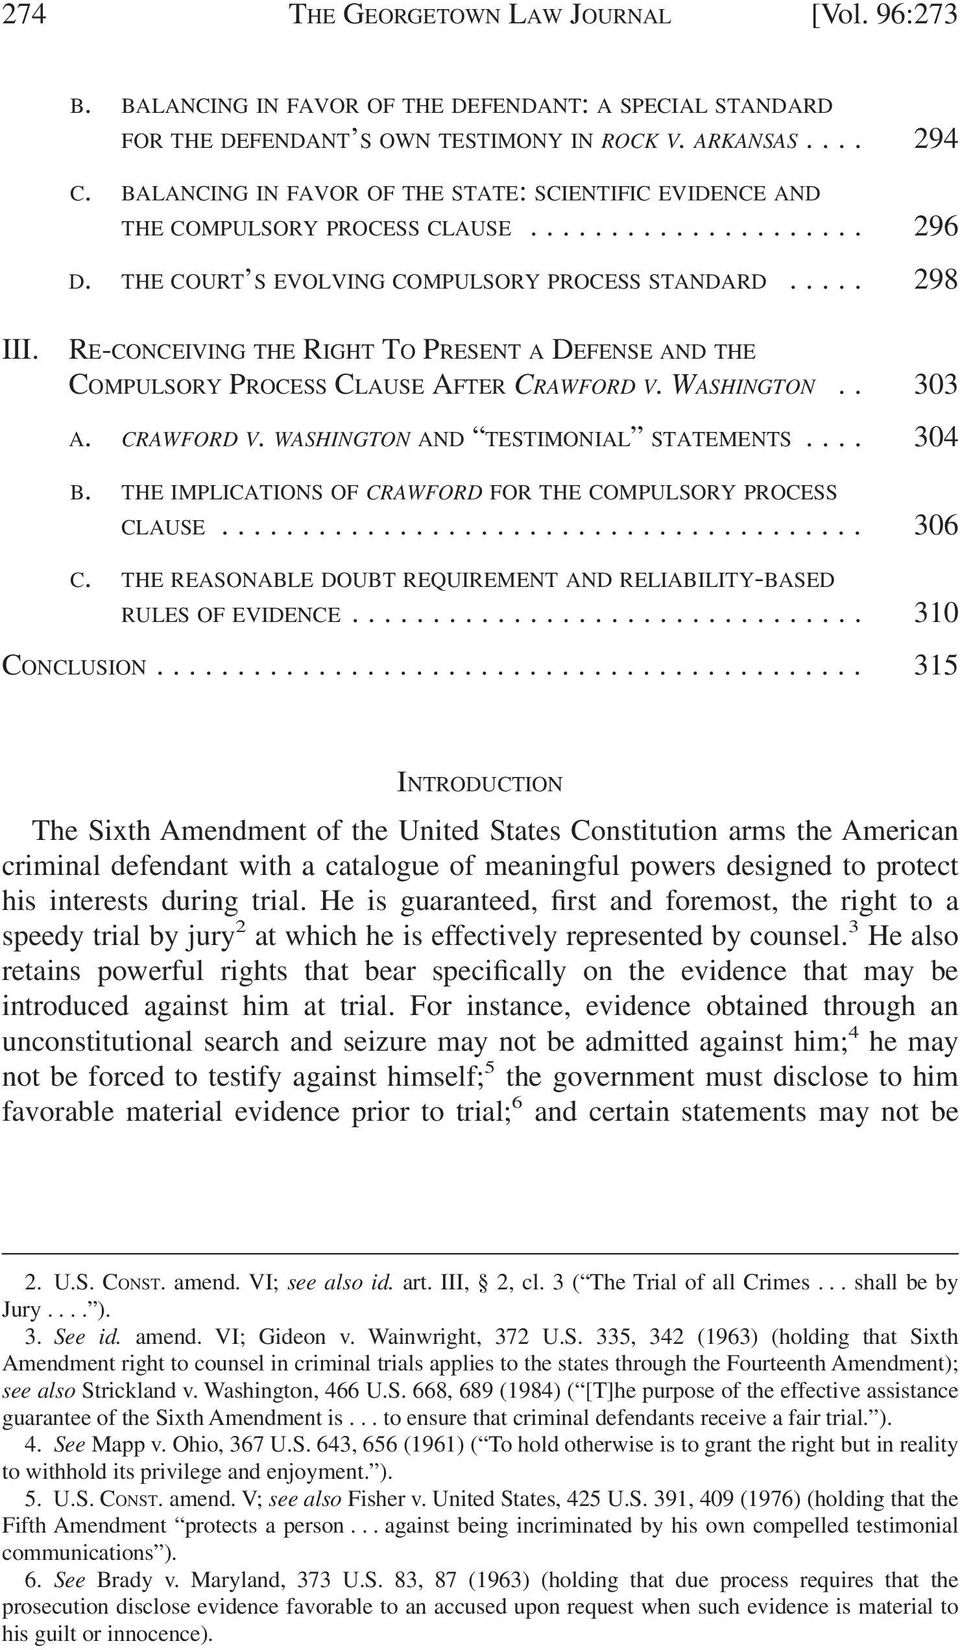 RE-CONCEIVING THE RIGHT TO PRESENT A DEFENSE AND THE COMPULSORY PROCESS CLAUSE AFTER CRAWFORD V.WASHINGTON.. 303 A. CRAWFORD V. WASHINGTON AND TESTIMONIAL STATEMENTS... 304 B.